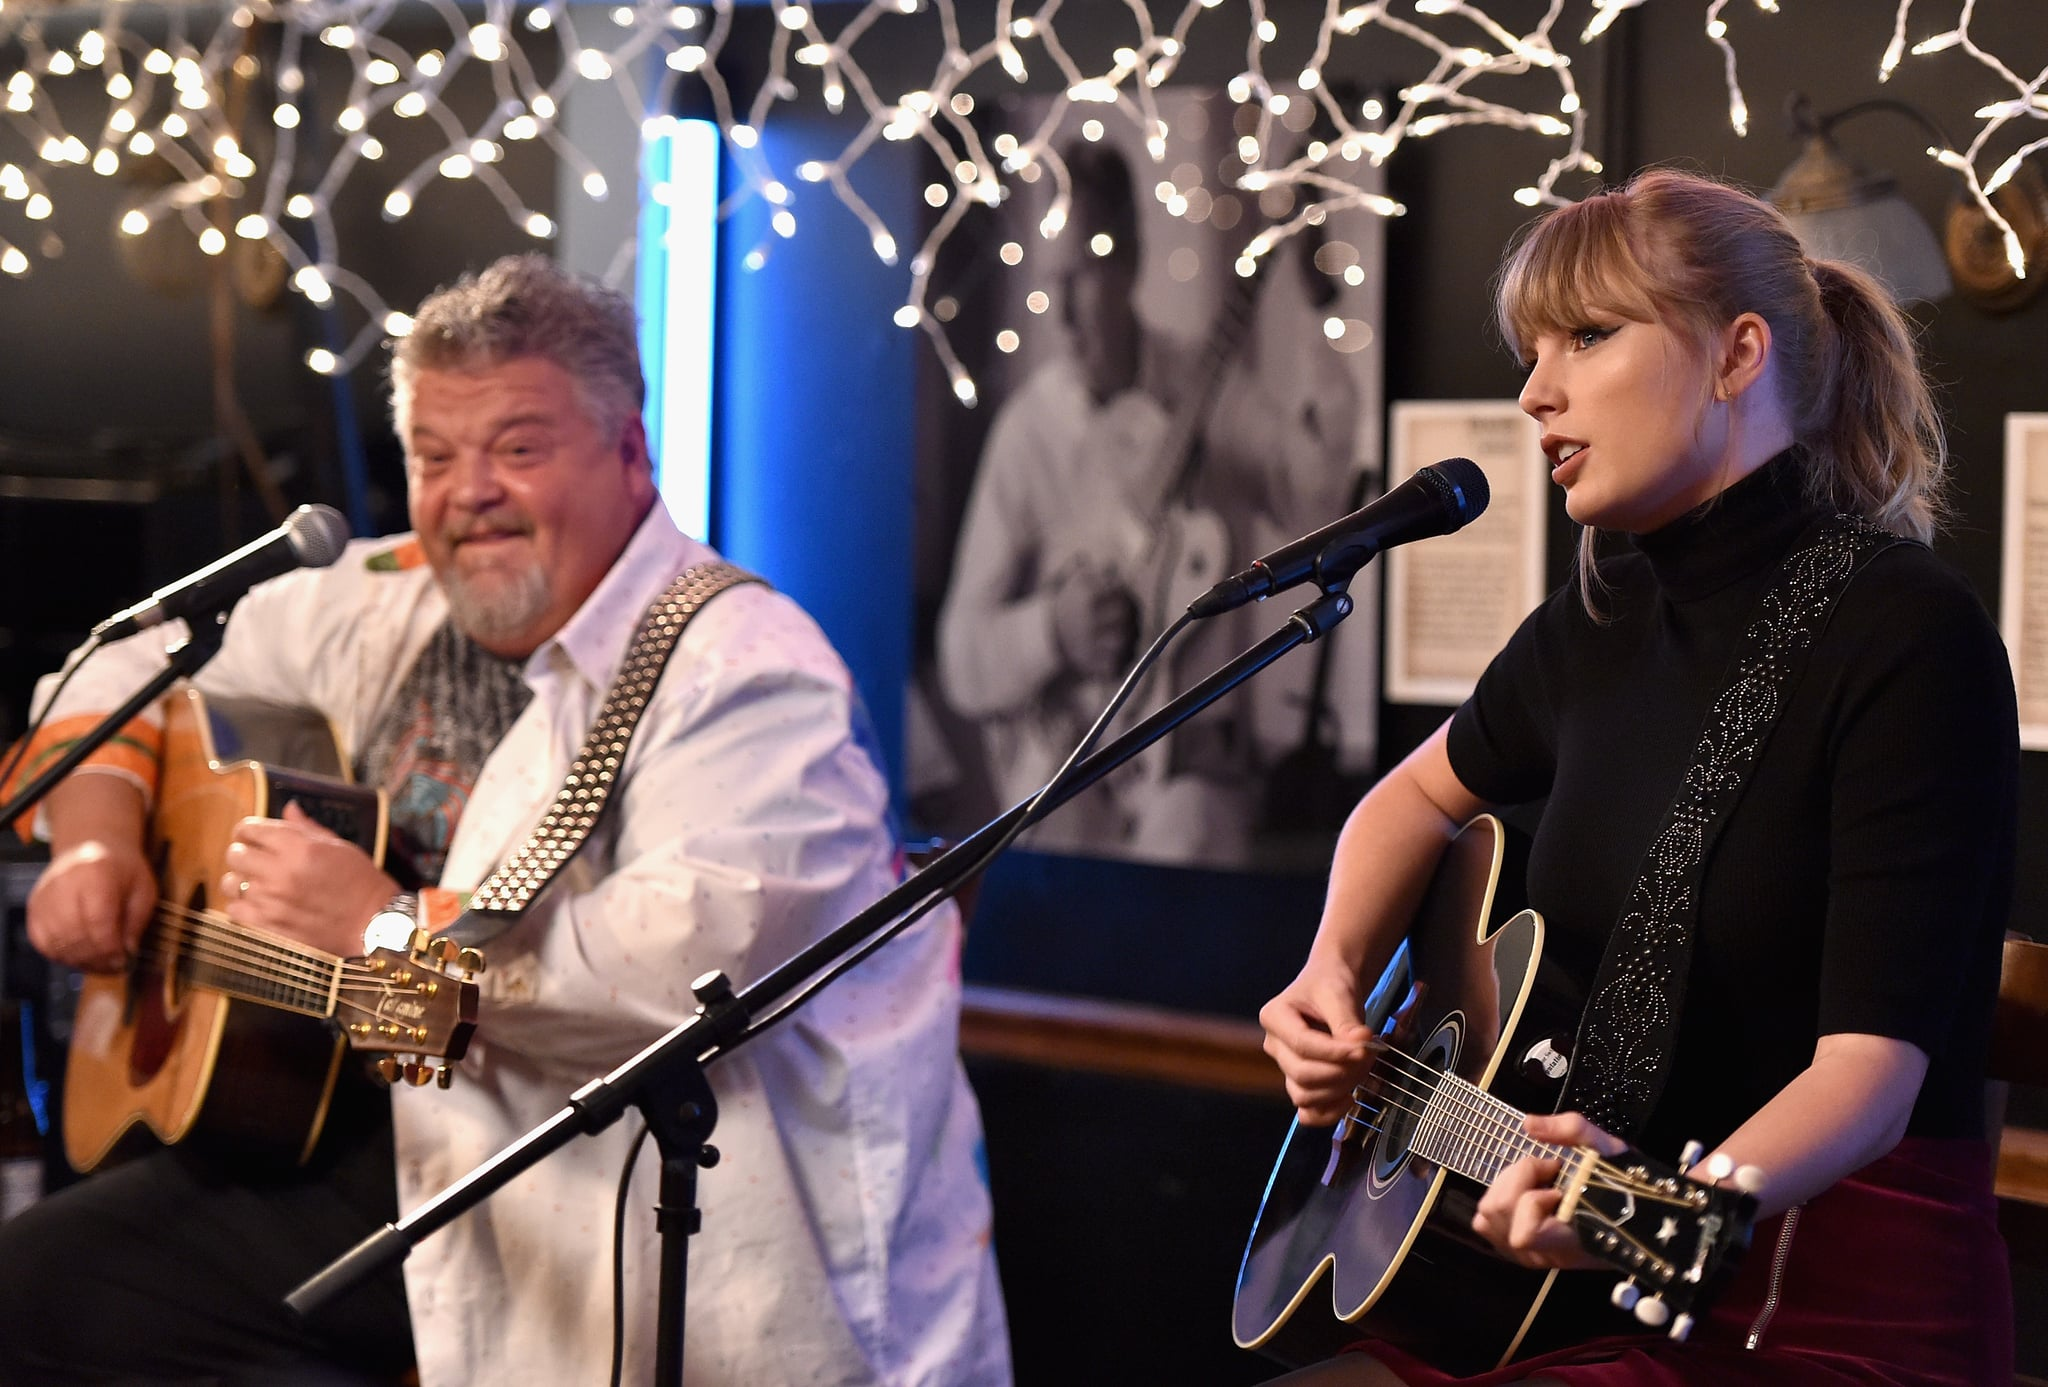 NASHVILLE, TN - MARCH 31: Craig Wiseman and special guest Taylor Swift perform onstage at Bluebird Cafe on March 31, 2018 in Nashville, Tennessee.  (Photo by John Shearer/Getty Images for 13 Management)